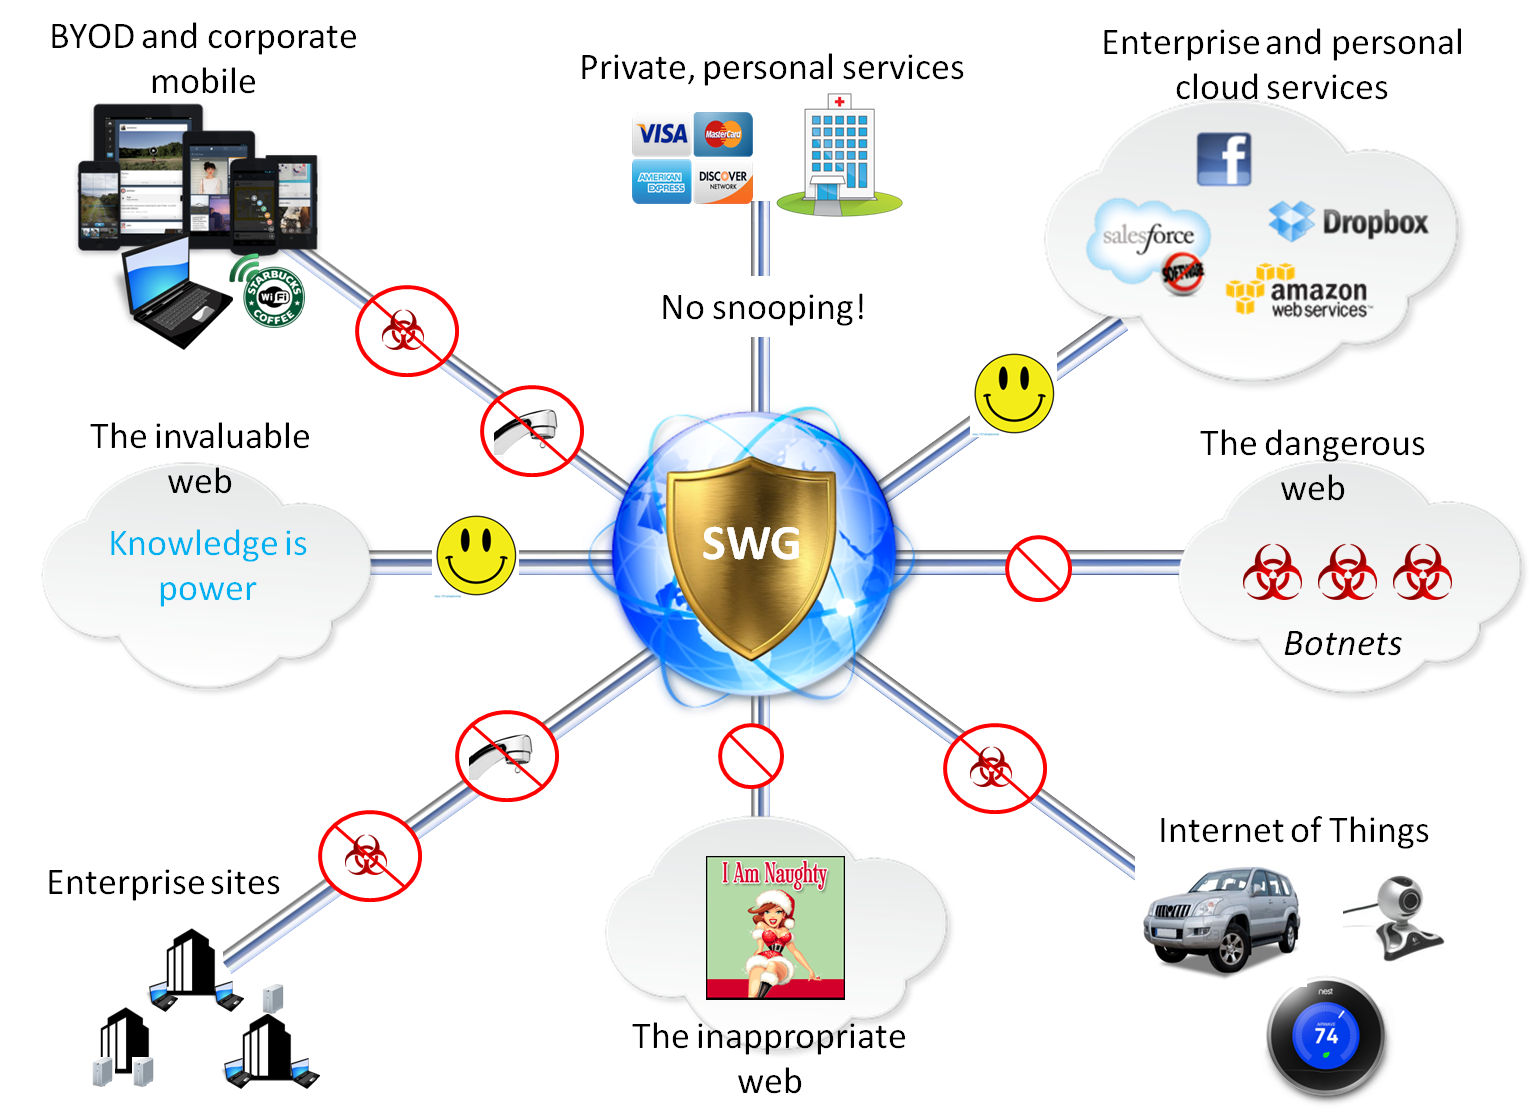 hight resolution of in recent years however the swg market has struggled to cope with cybersecurity issues cloud computing and mobility roiling the it environment